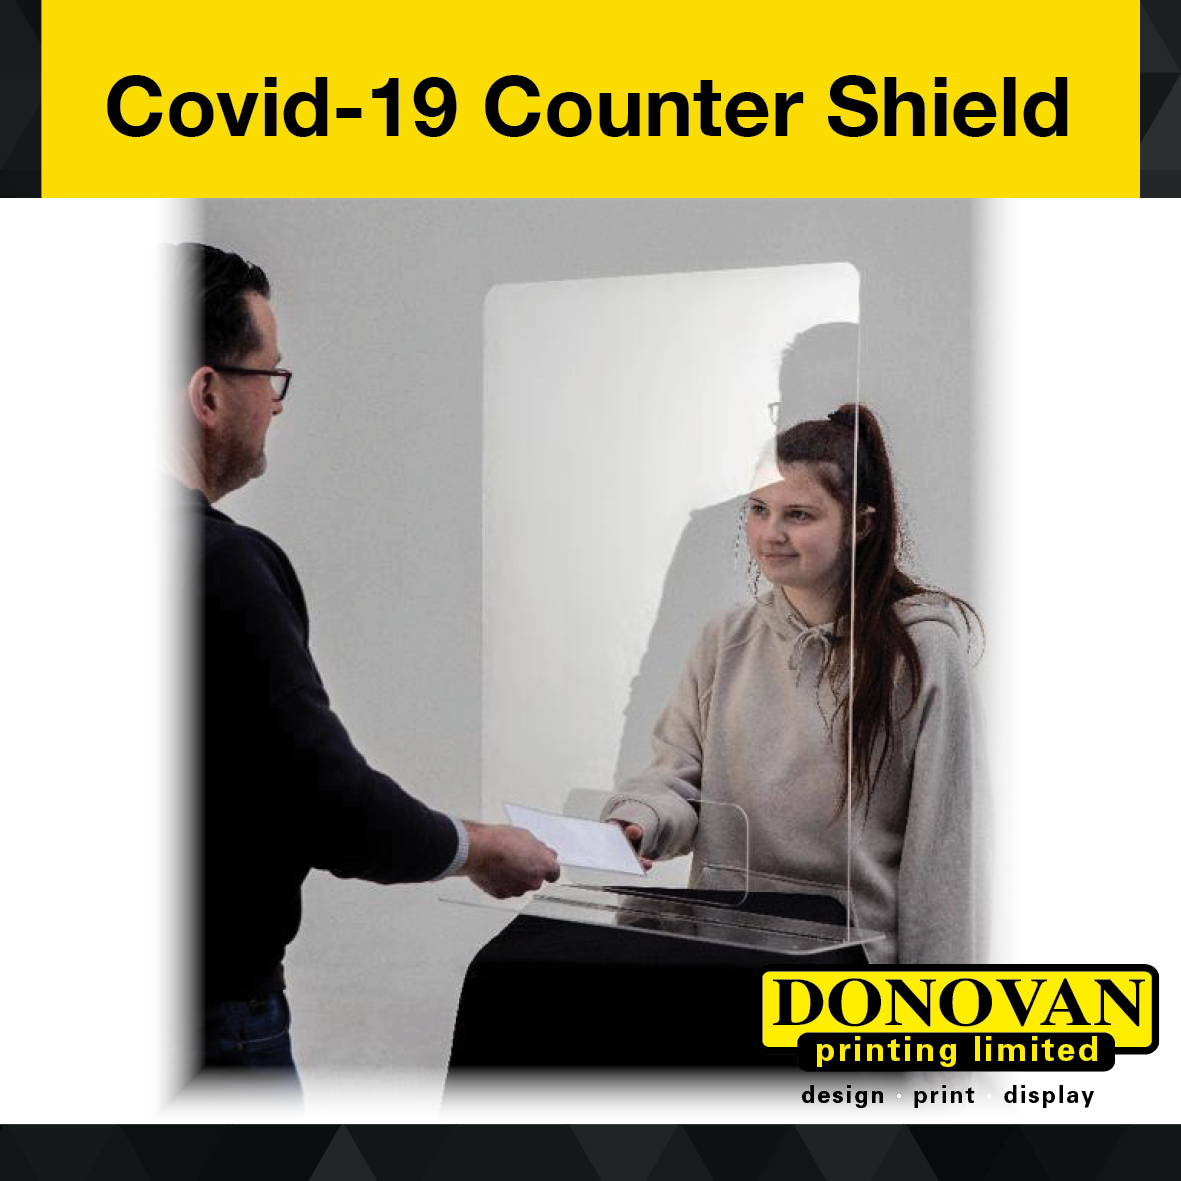 Covid Counter Shield 600mm Image